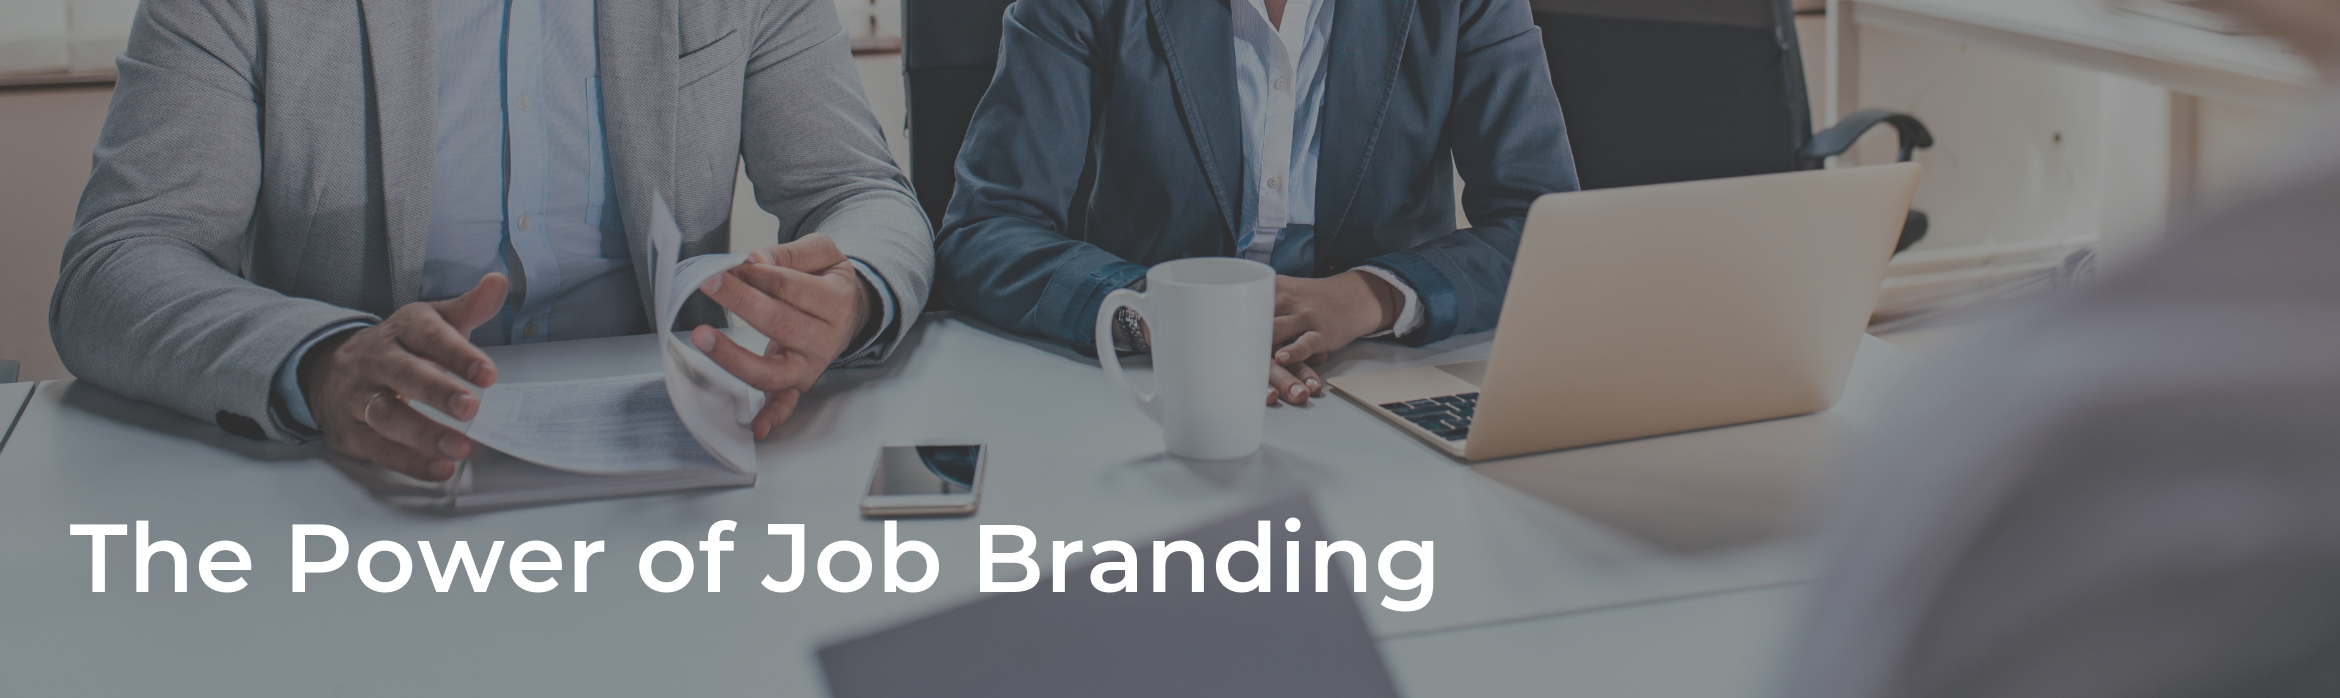 The Power of Job Branding